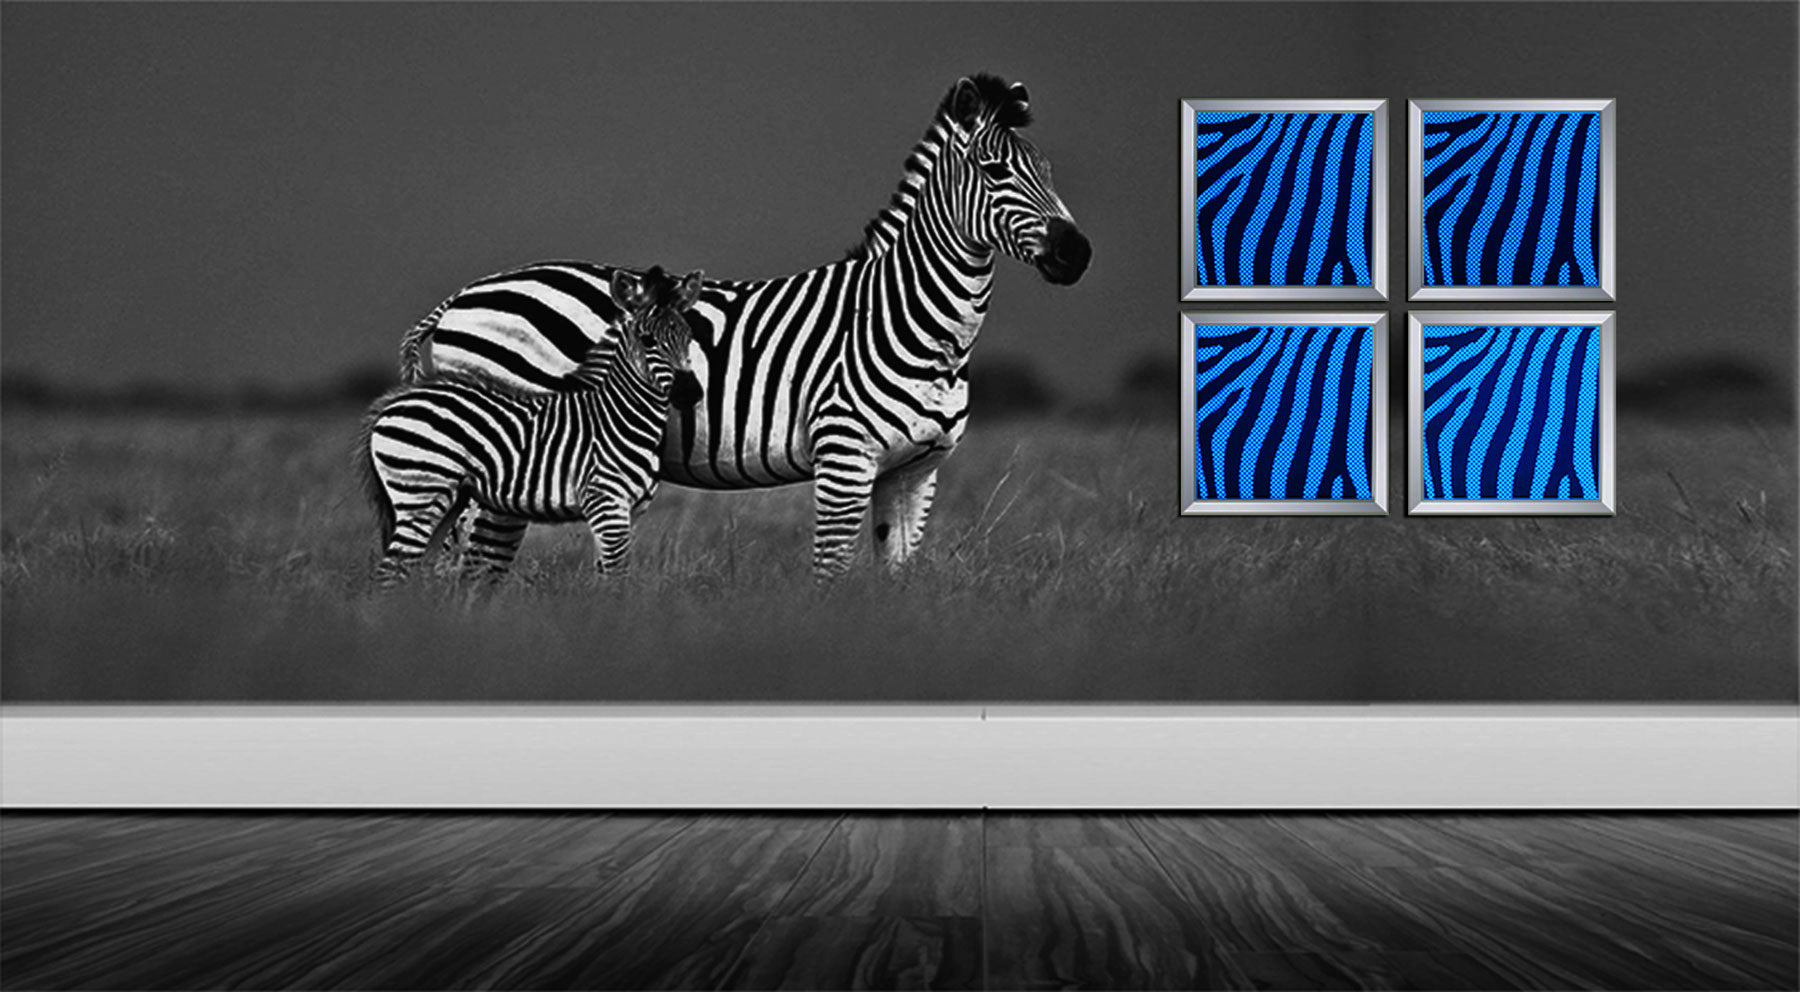 led wall decor art, panel metal wall art, home accent , metal art, color changing luminous lights, abstract home decor zebra arts art lights led arts  color changing